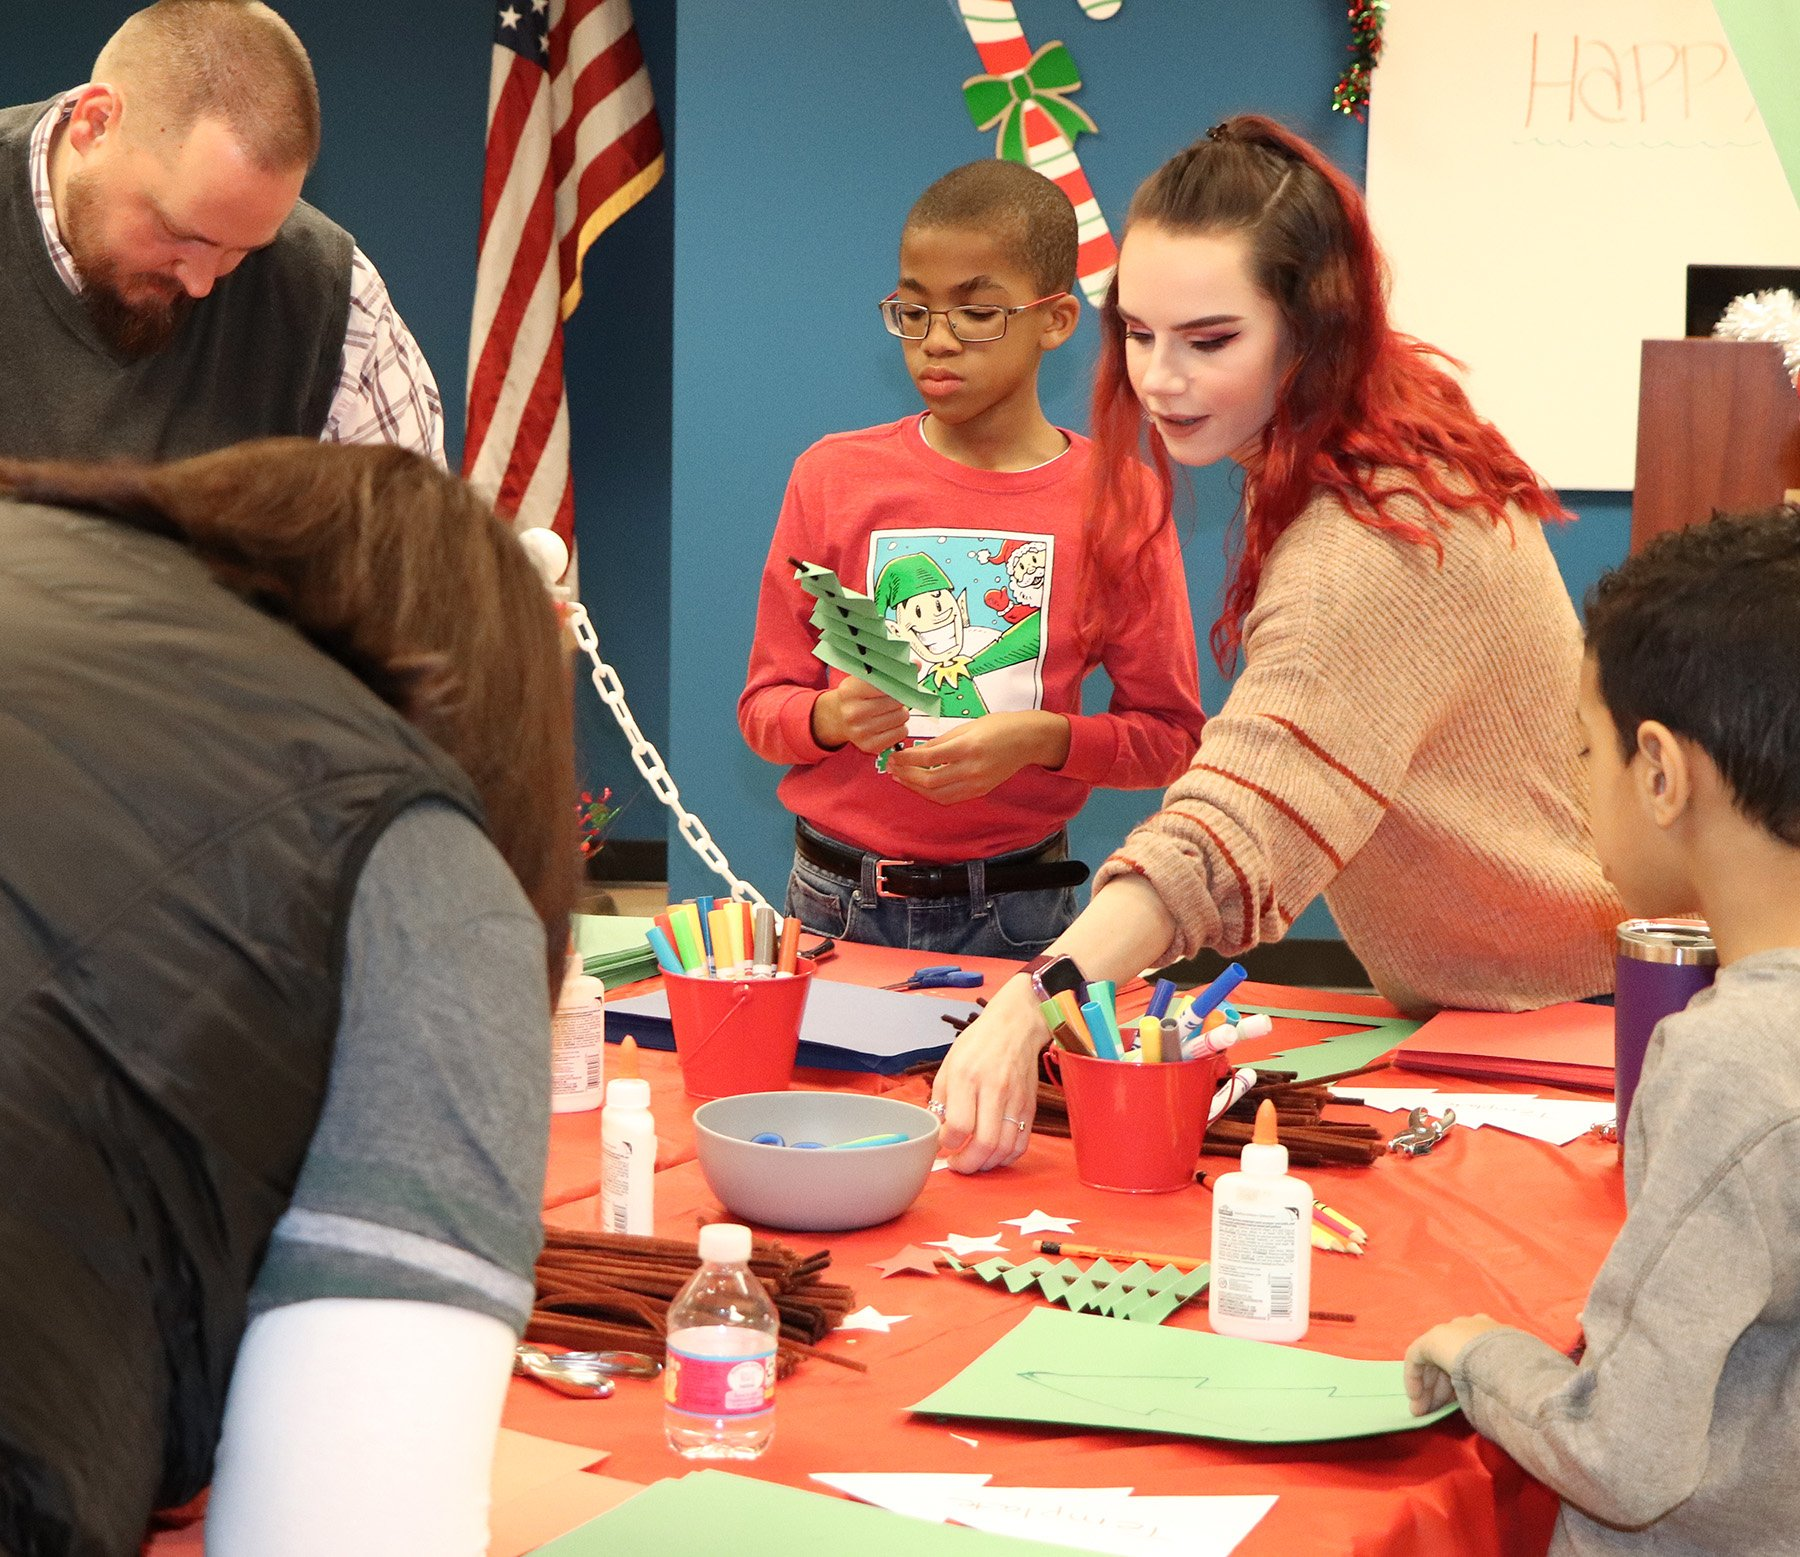 LAFCU's Larissa Moyer, second from right, helps with crafts at the credit union's Breakfast with Santa.